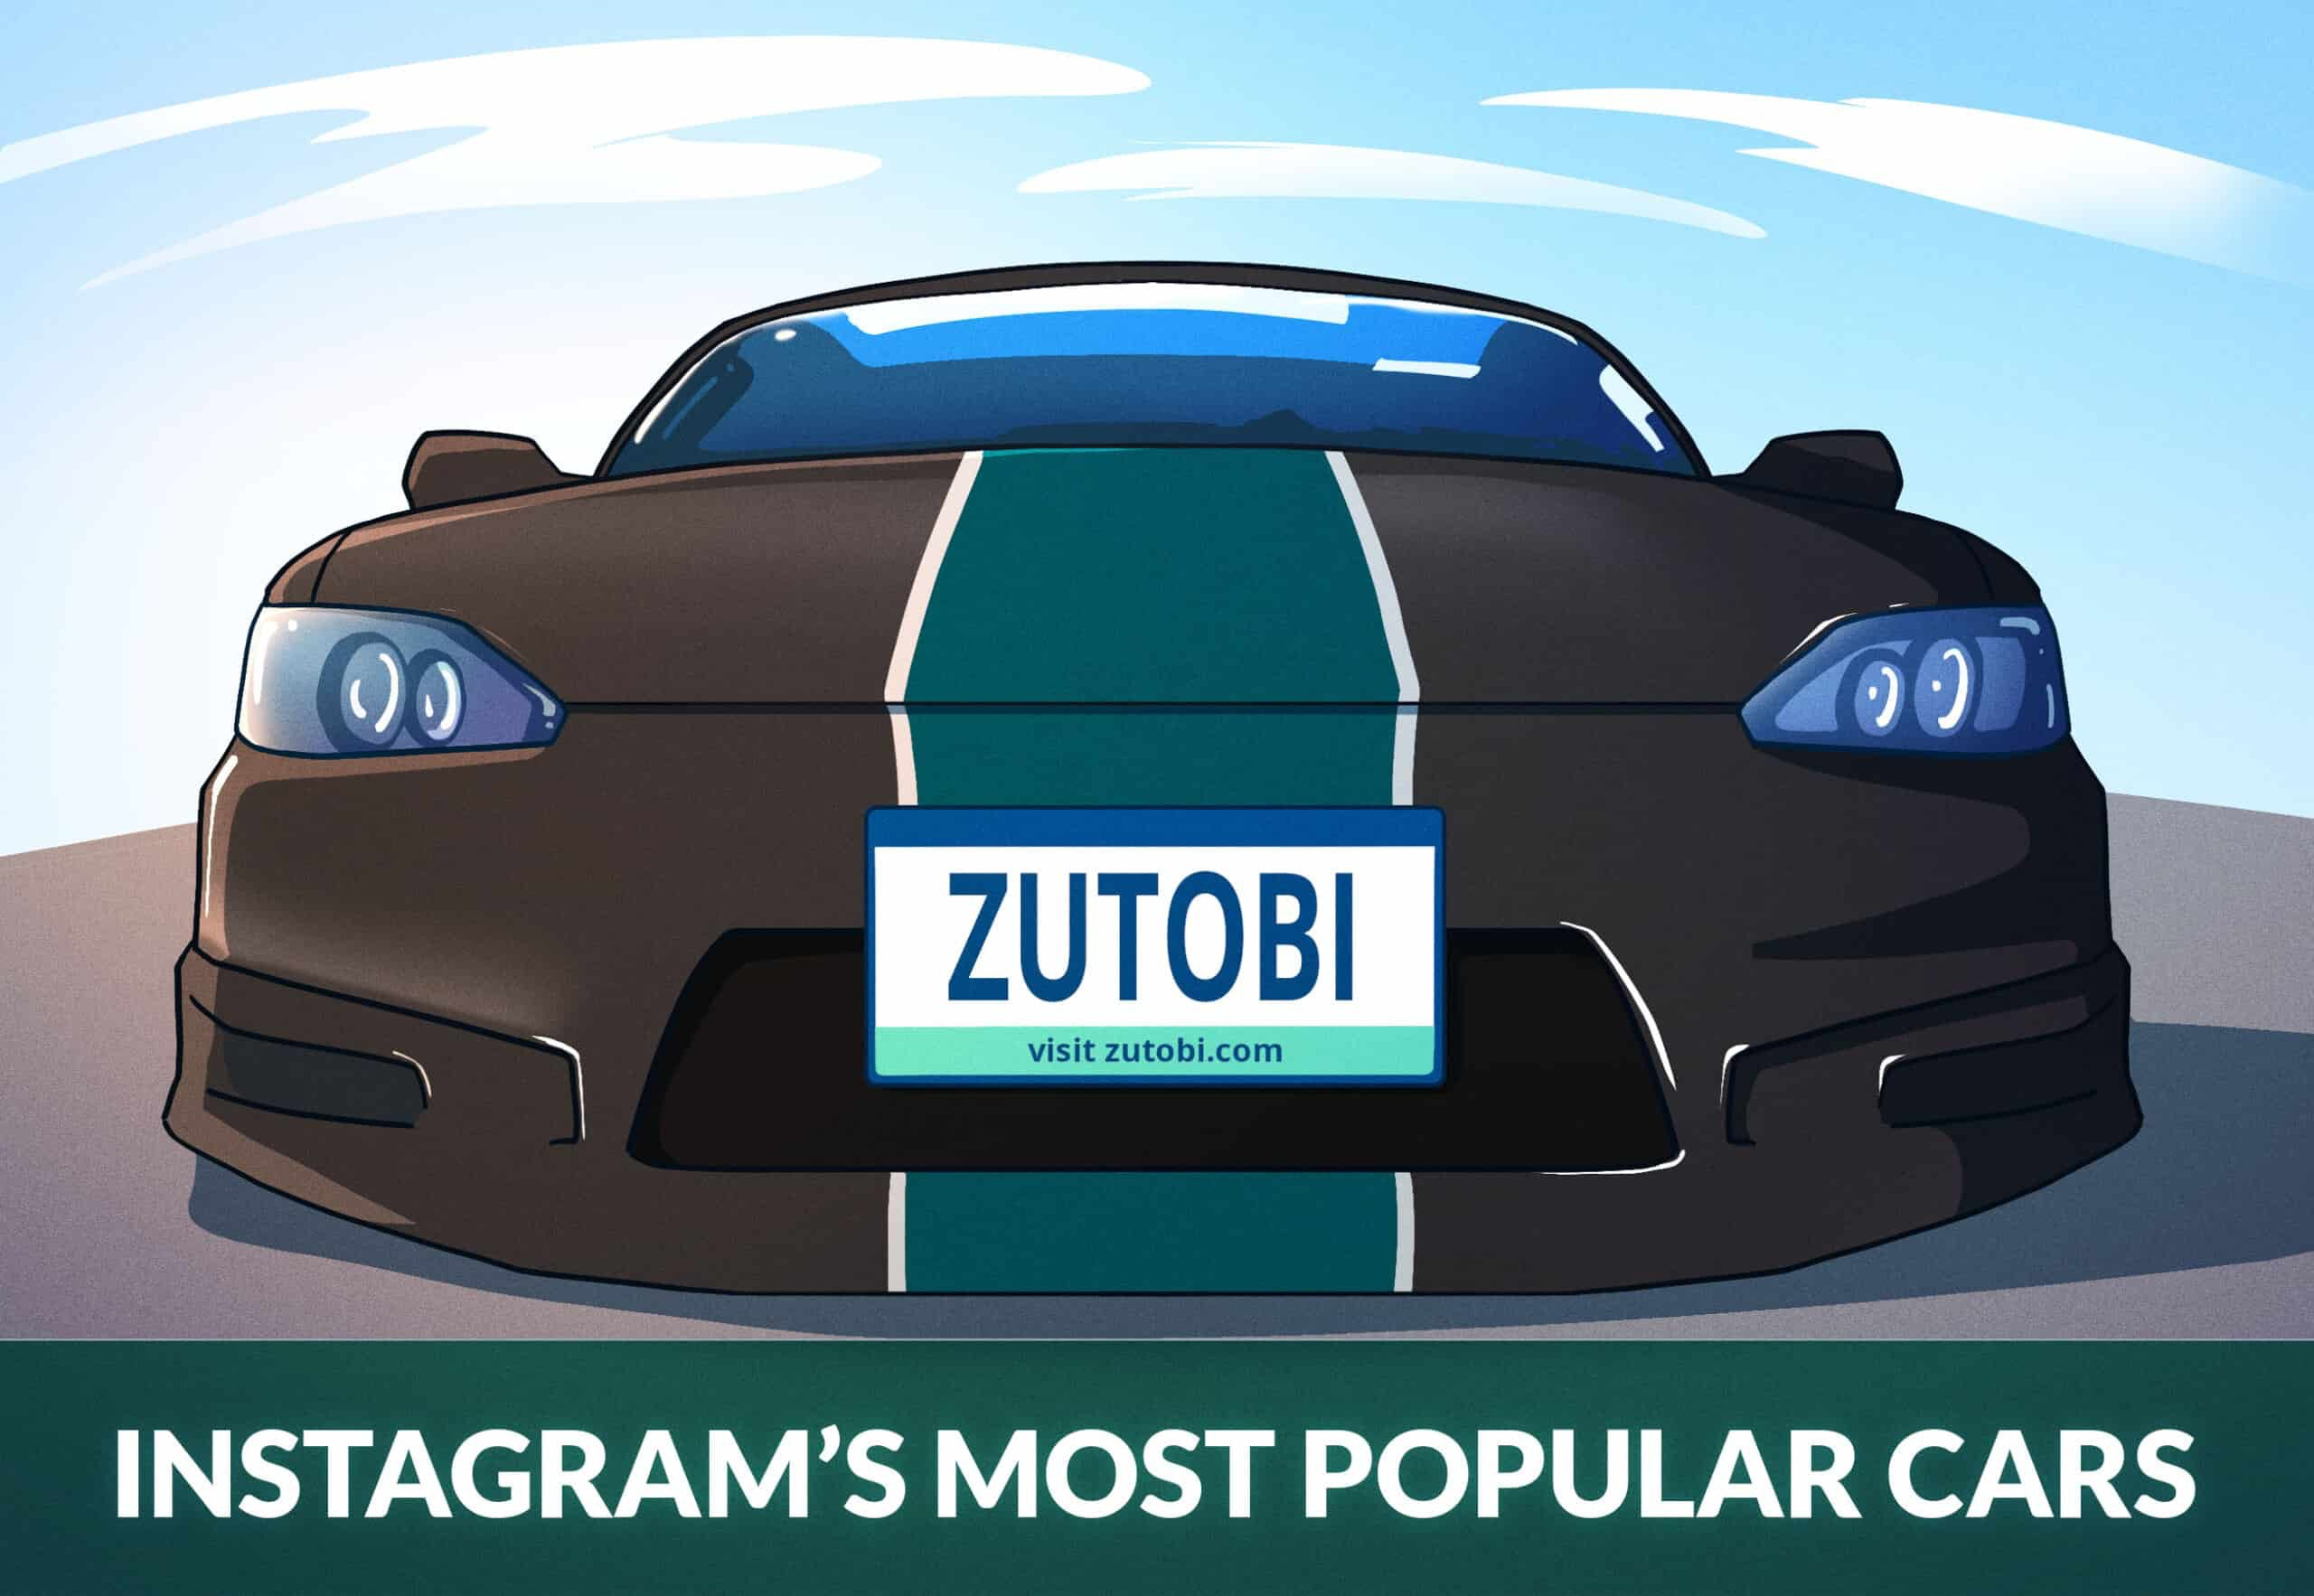 INSTAGRAMS MOST POPULAR CARS